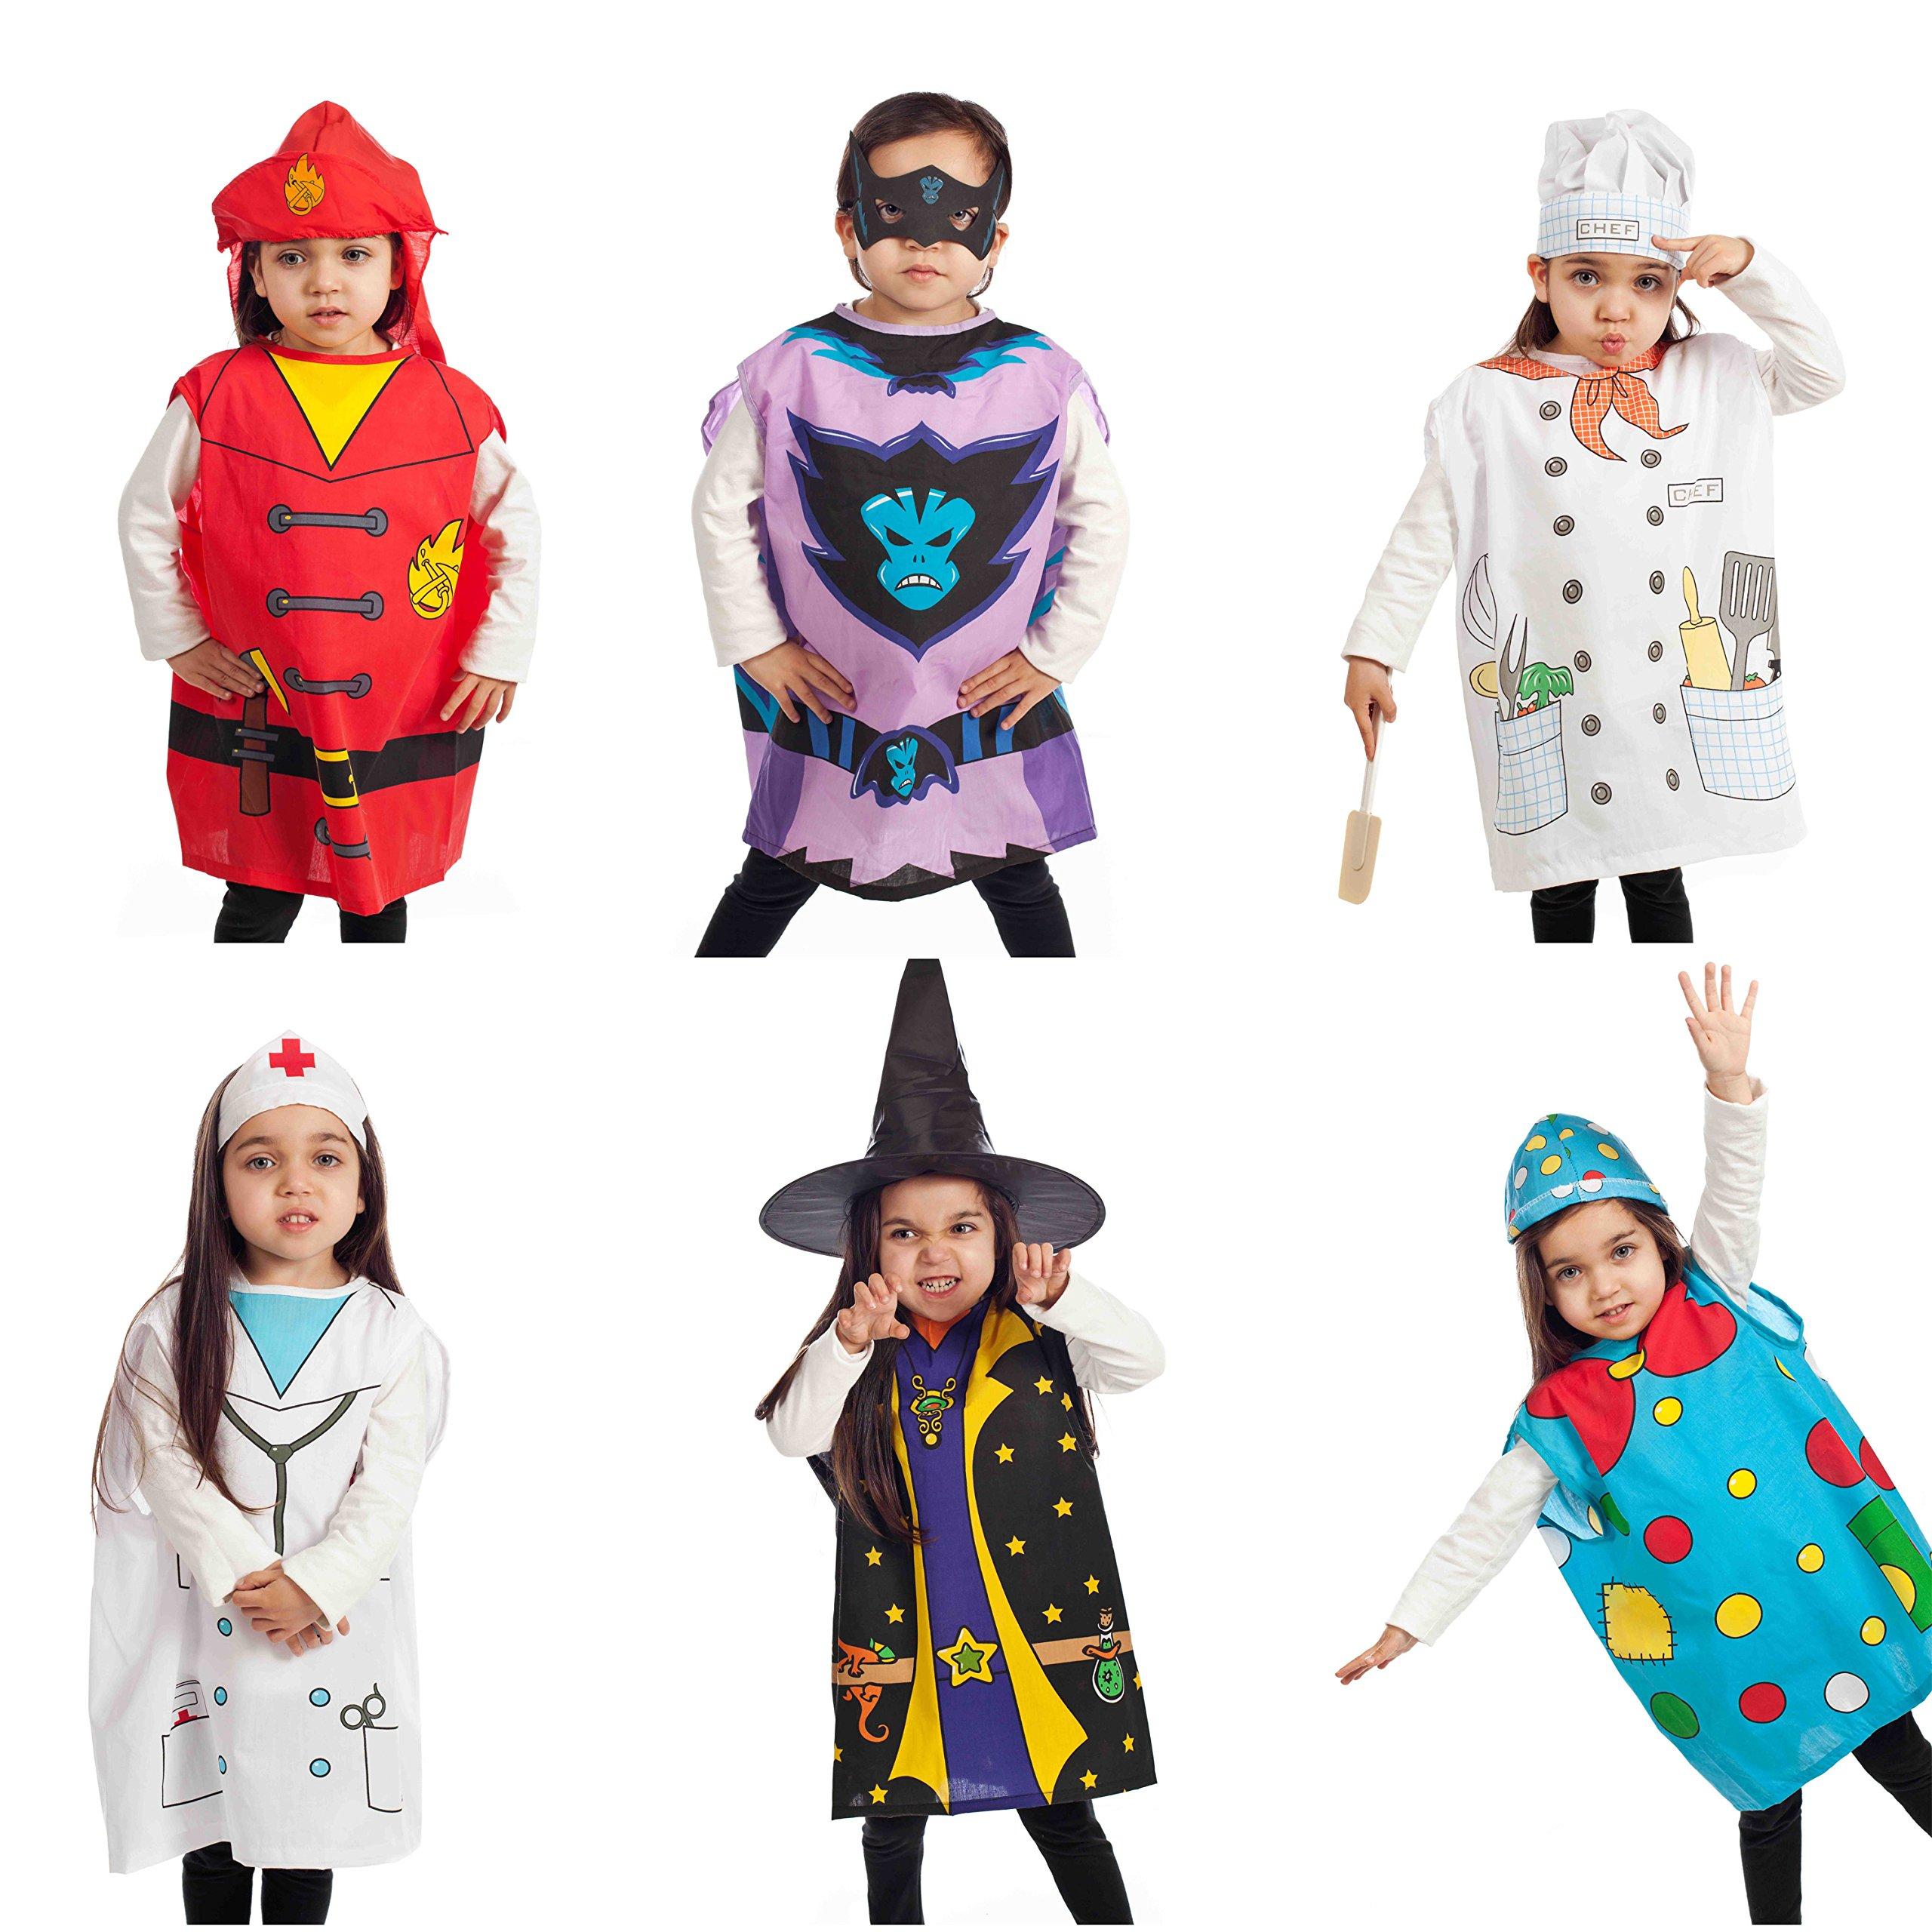 IQ Toys 6 Pieces Dress Up Costumes Fireman Gotham Cook Nurse Clown Witch by IQ Toys (Image #1)